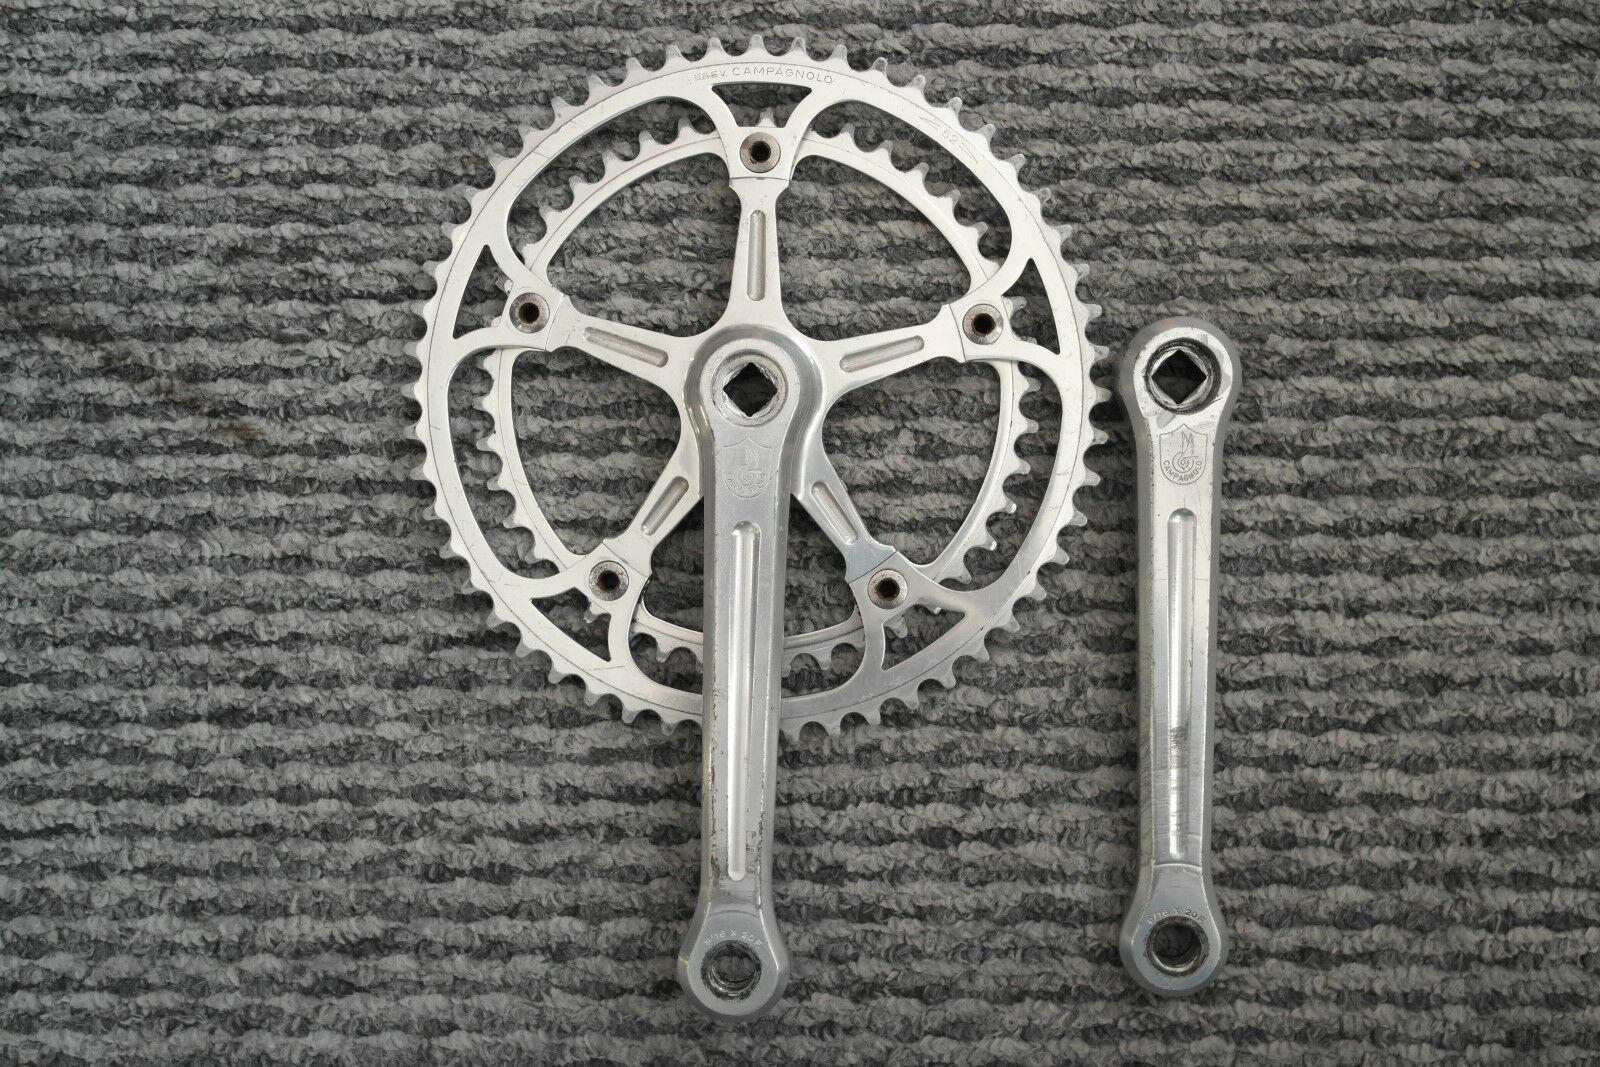 Campagnolo Campag Campy Eroica Record Strada 52 42 Chainset 170mm